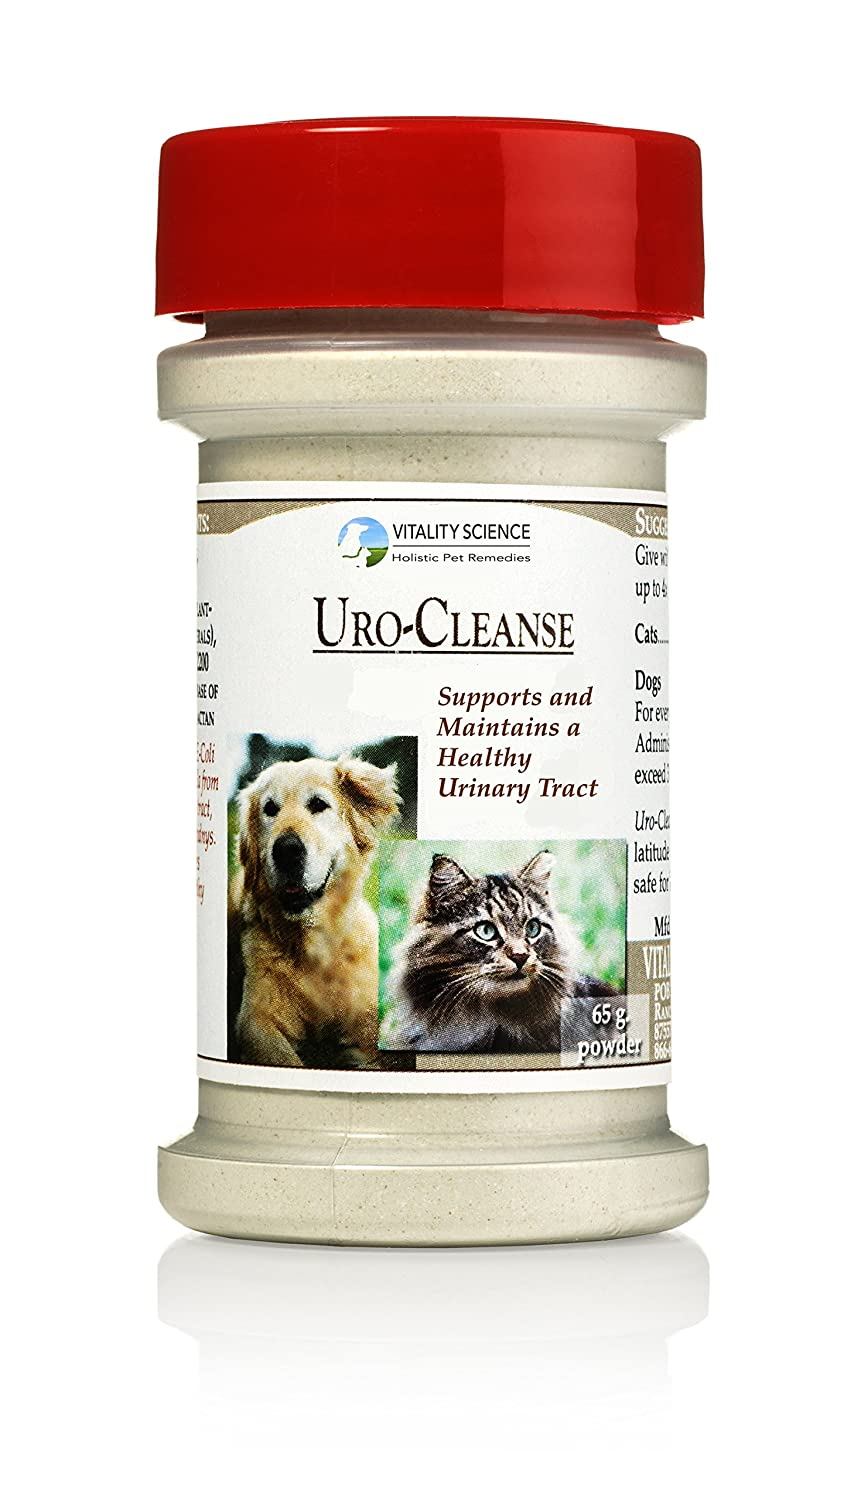 Vitality Science URO-Cleanse for Cats | Maintains a Healthy Urinary Tract | Helps Bladder Control | Improves Kidney Health | Maintains Urine pH | Boosts Immune System | No Side Effects | 100% Natural